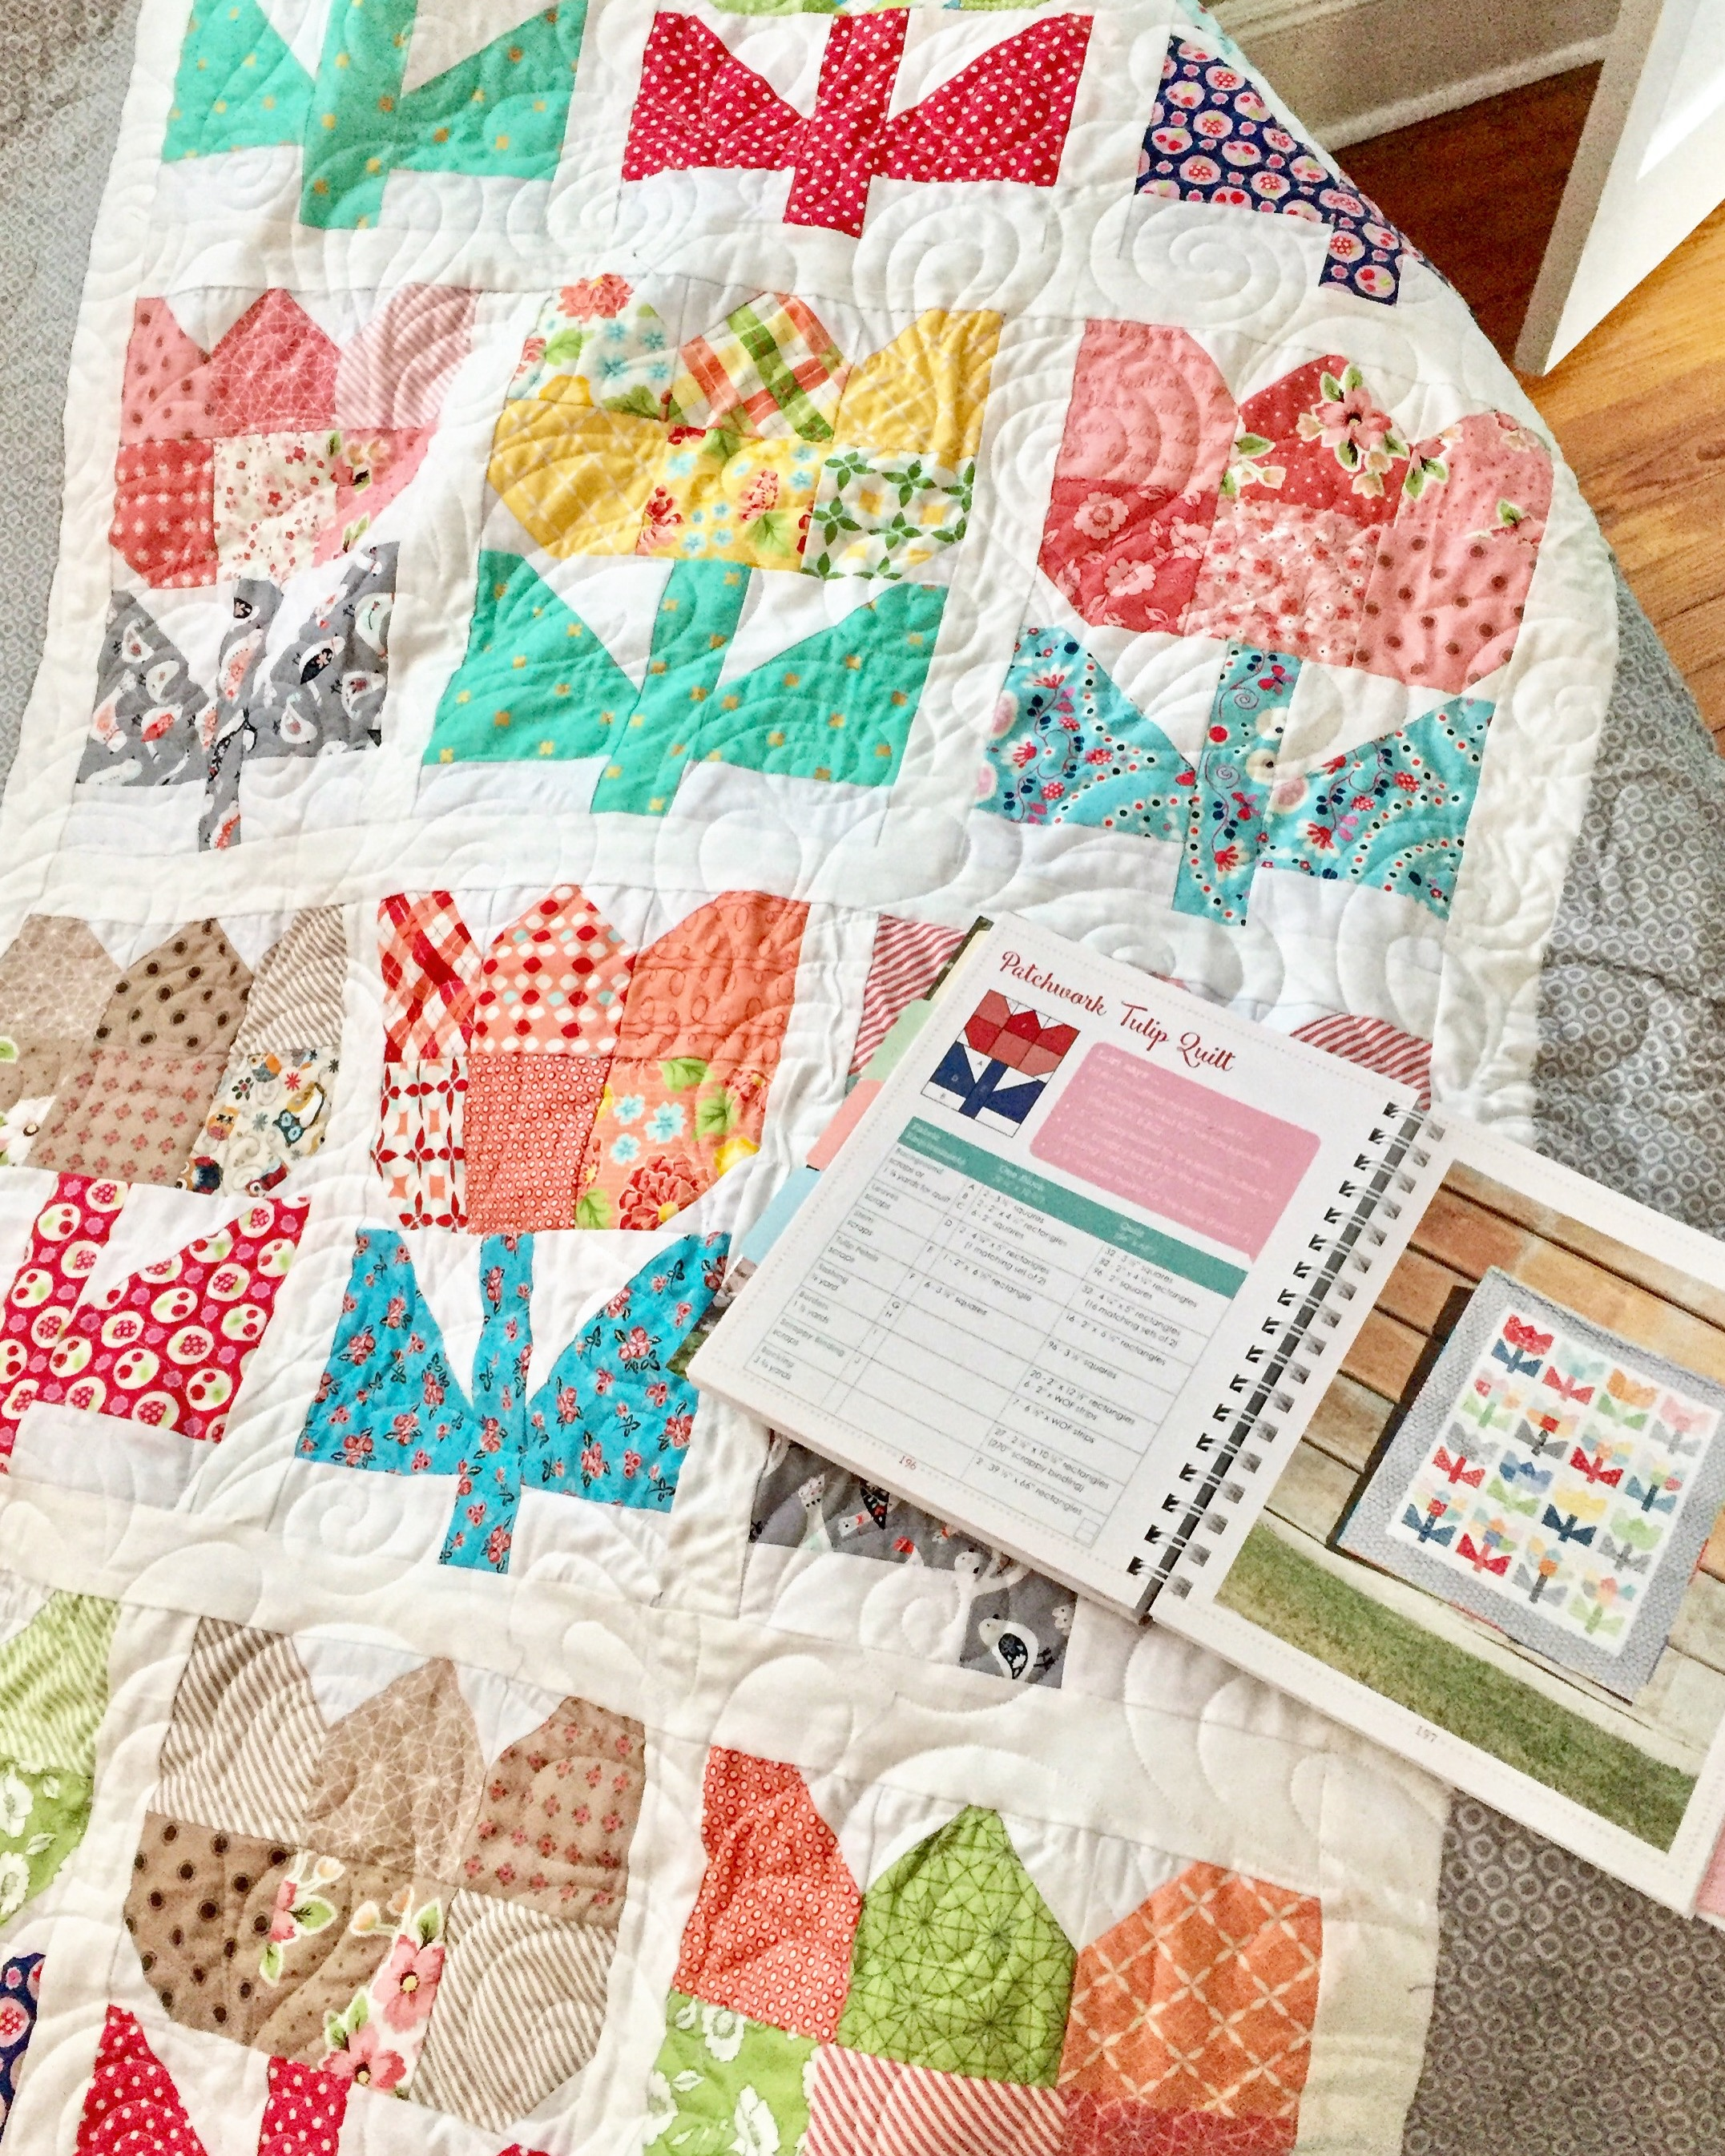 Lori Holt's Scrappy Project Planner